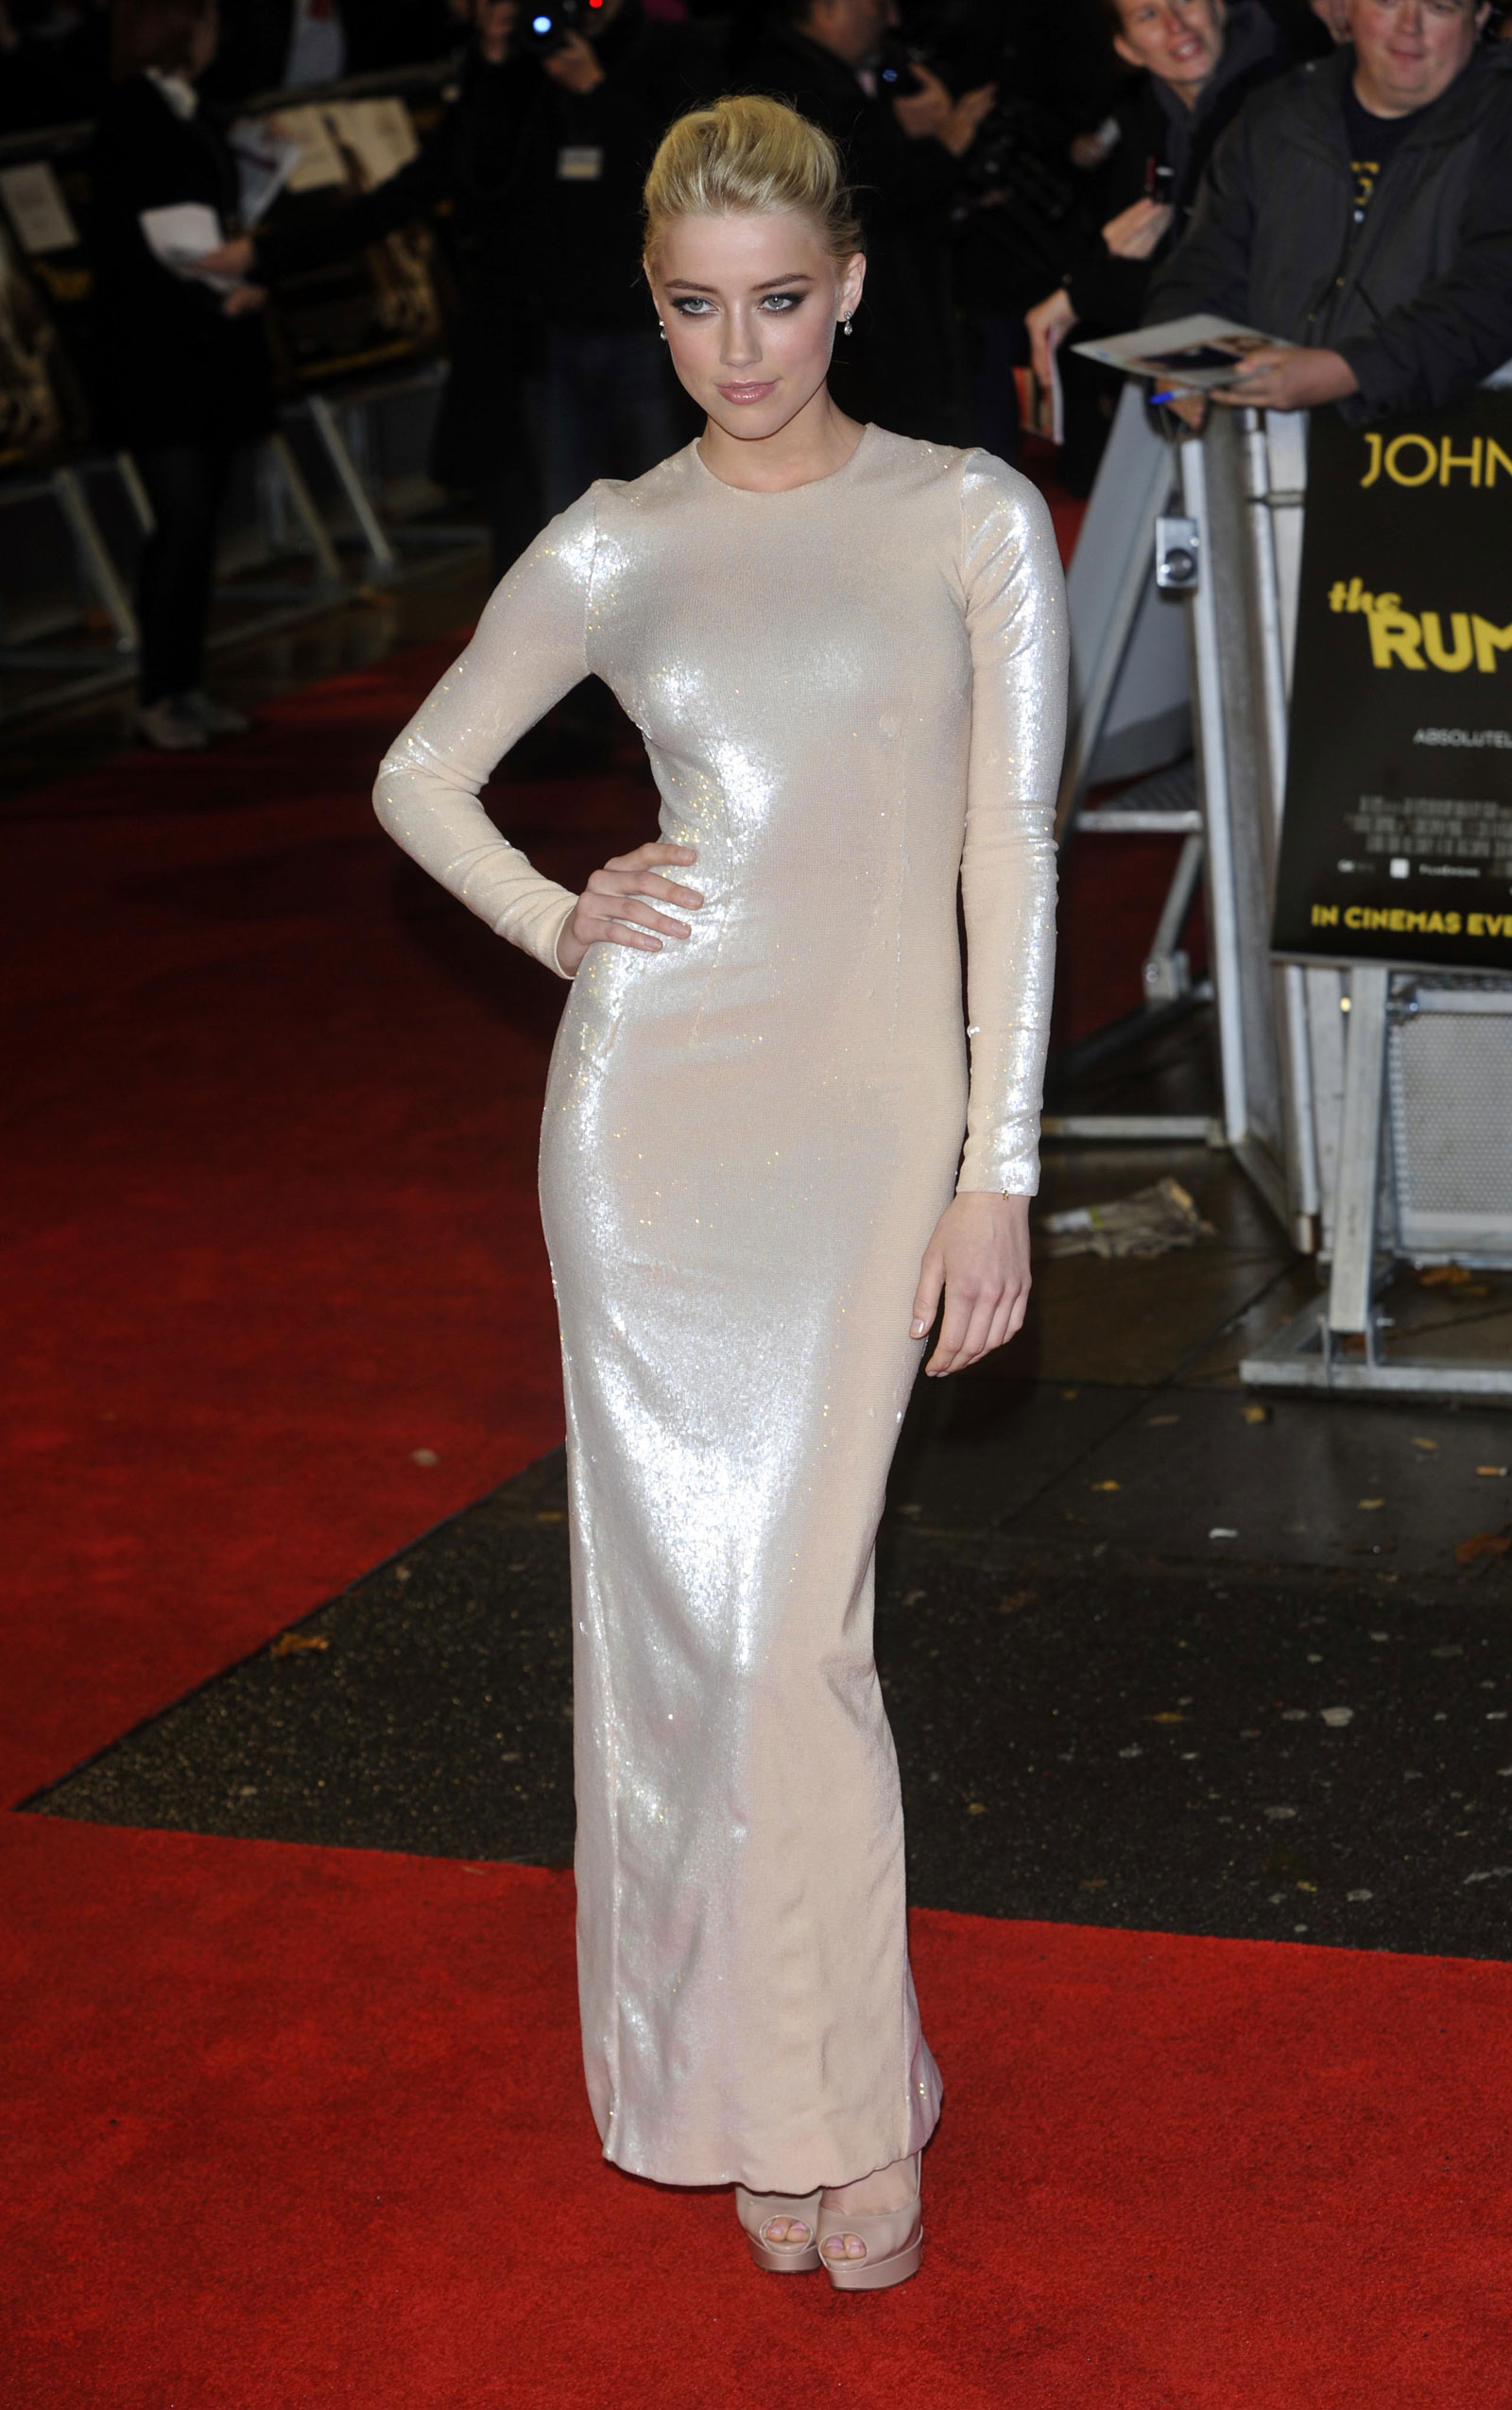 Amber Heard At The Rum Diary Premiere In London 62 Photos HawtCelebs